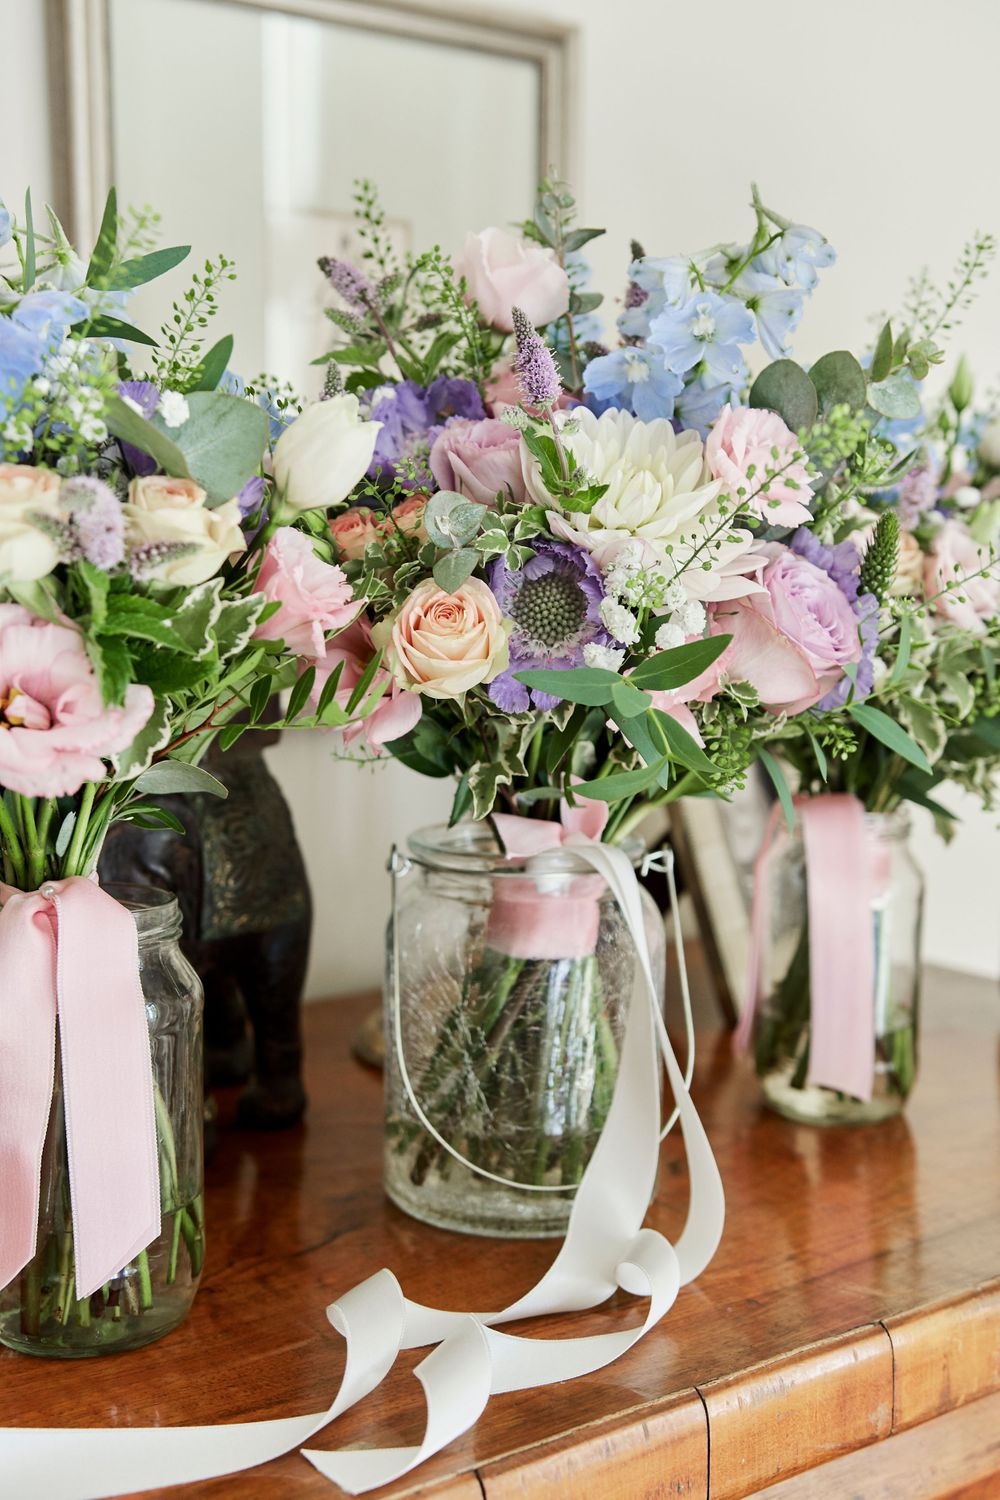 bridal bouquet at The old rectory, Norfolk. By Norfolk Wedding photographer Faye Amare